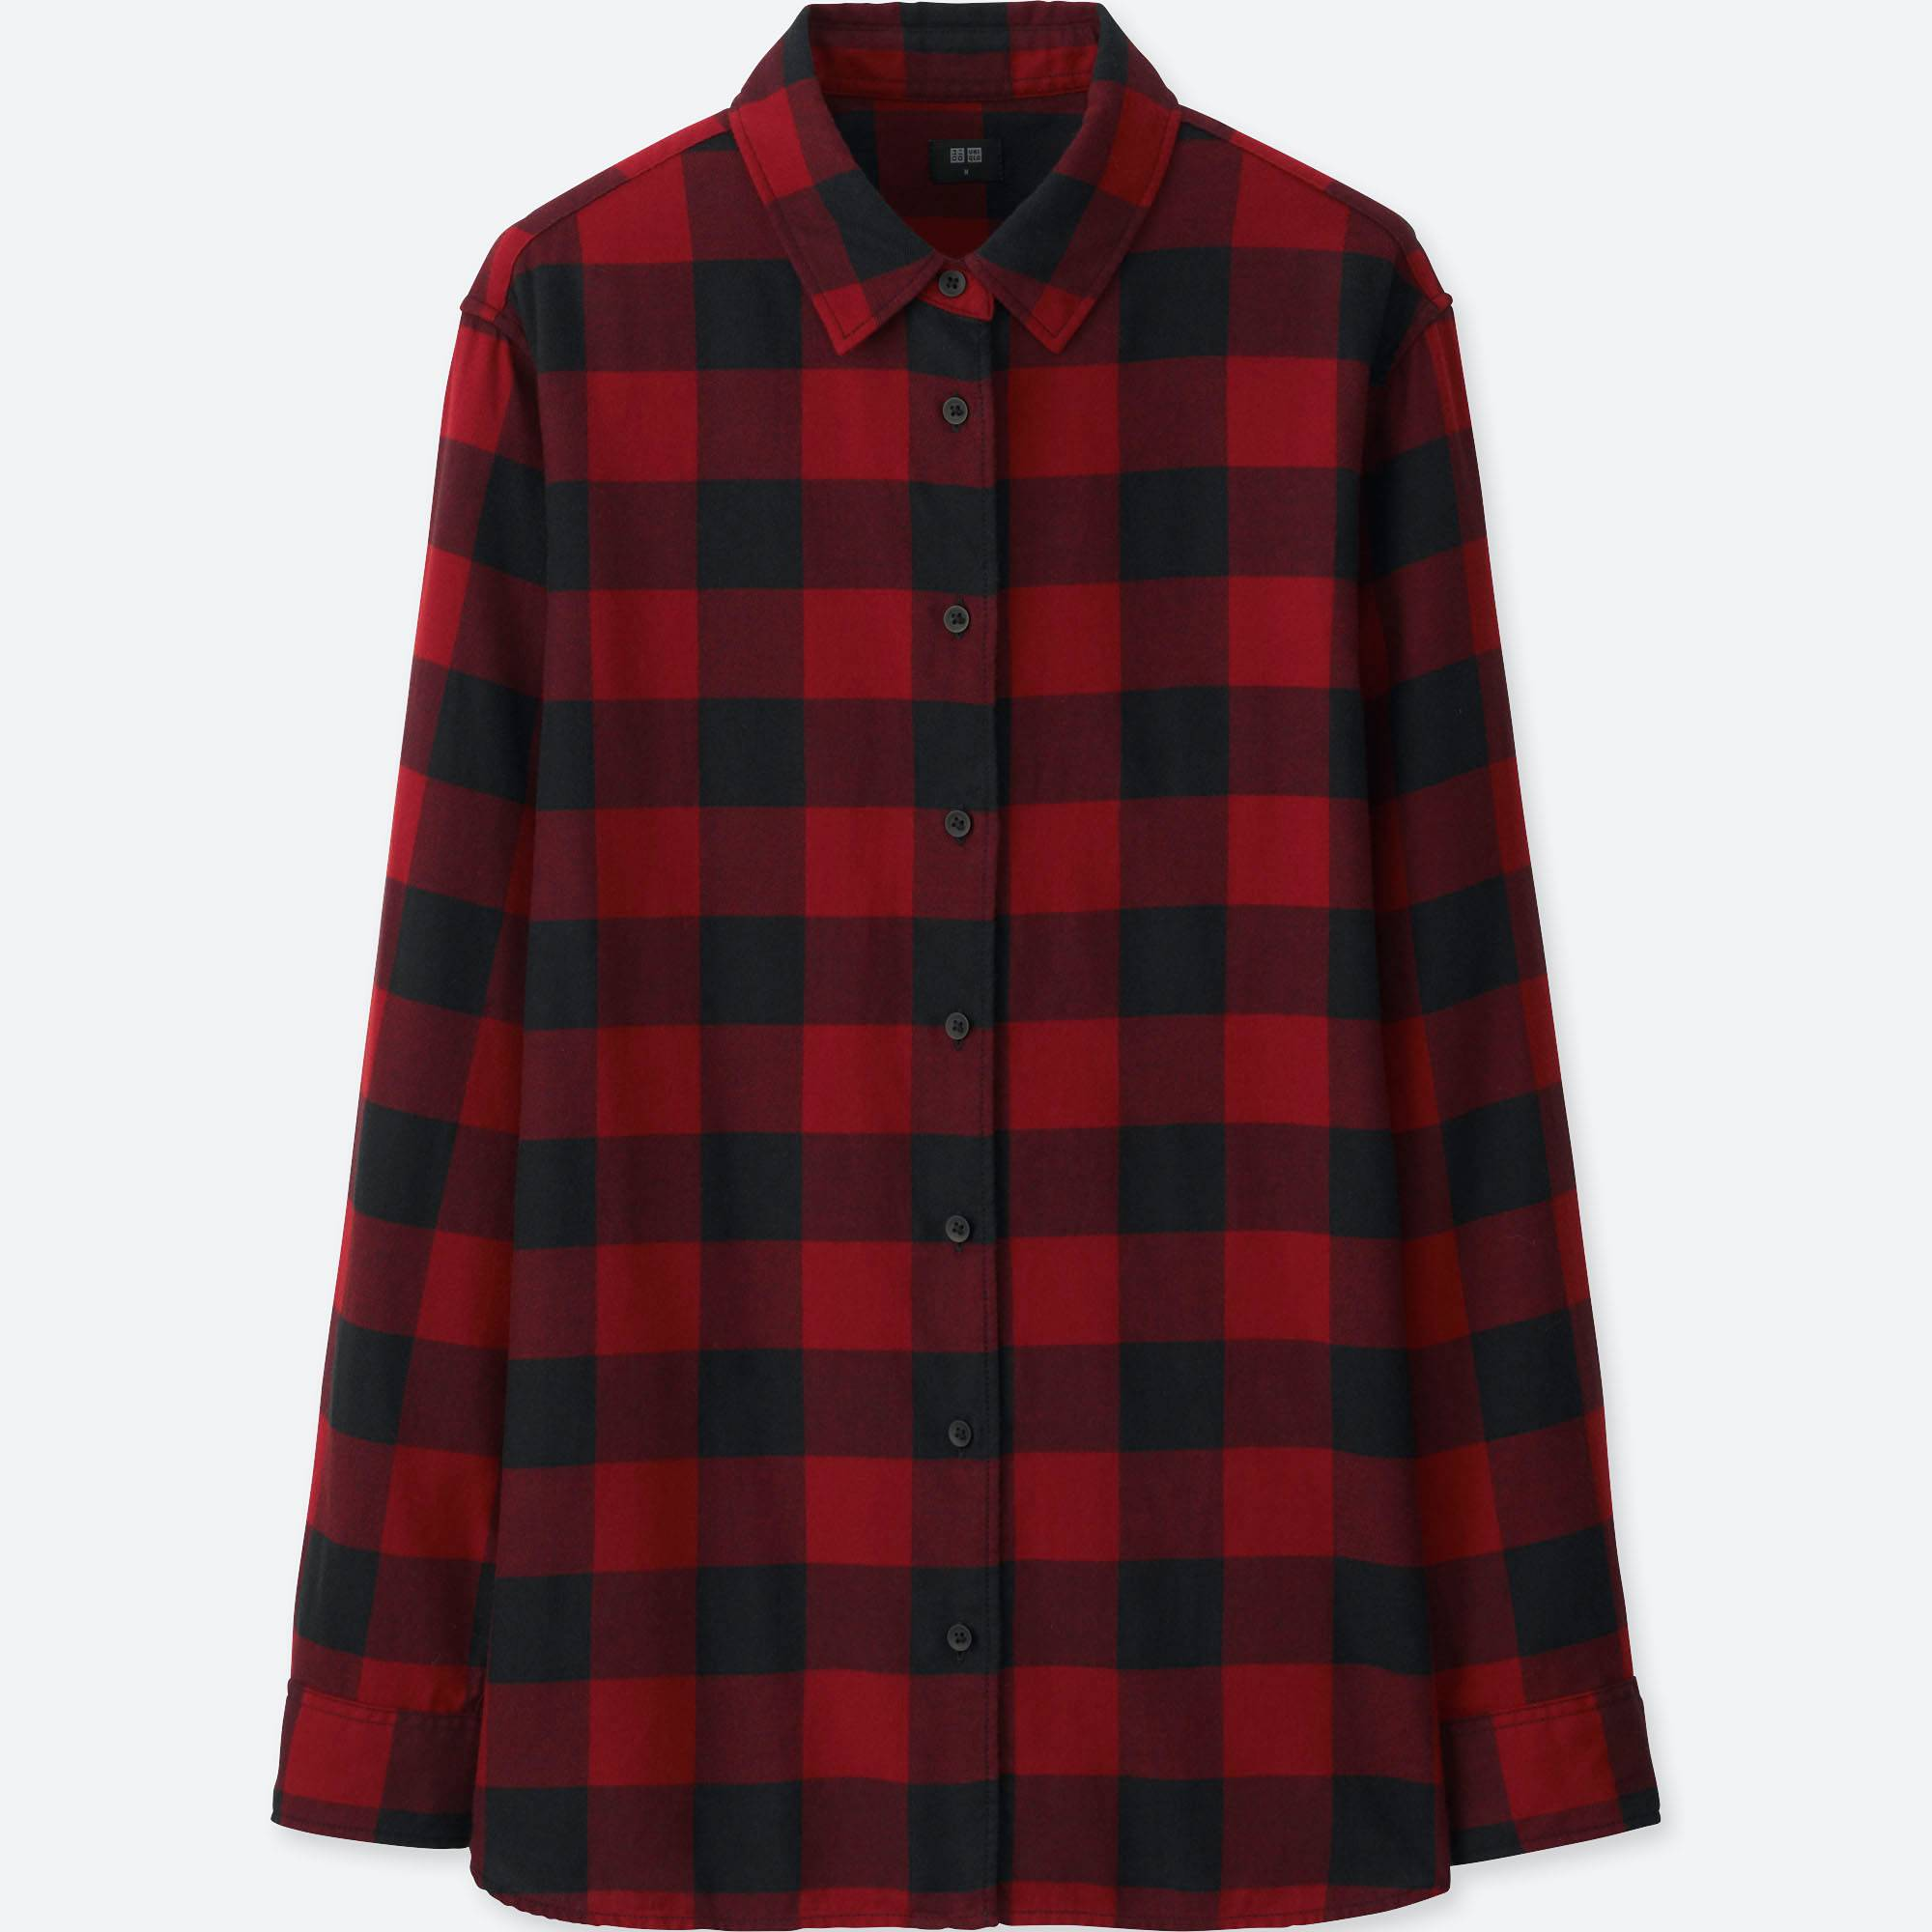 WOMEN FLANNEL CHECKED LONG-SLEEVE SHIRT | UNIQLO US